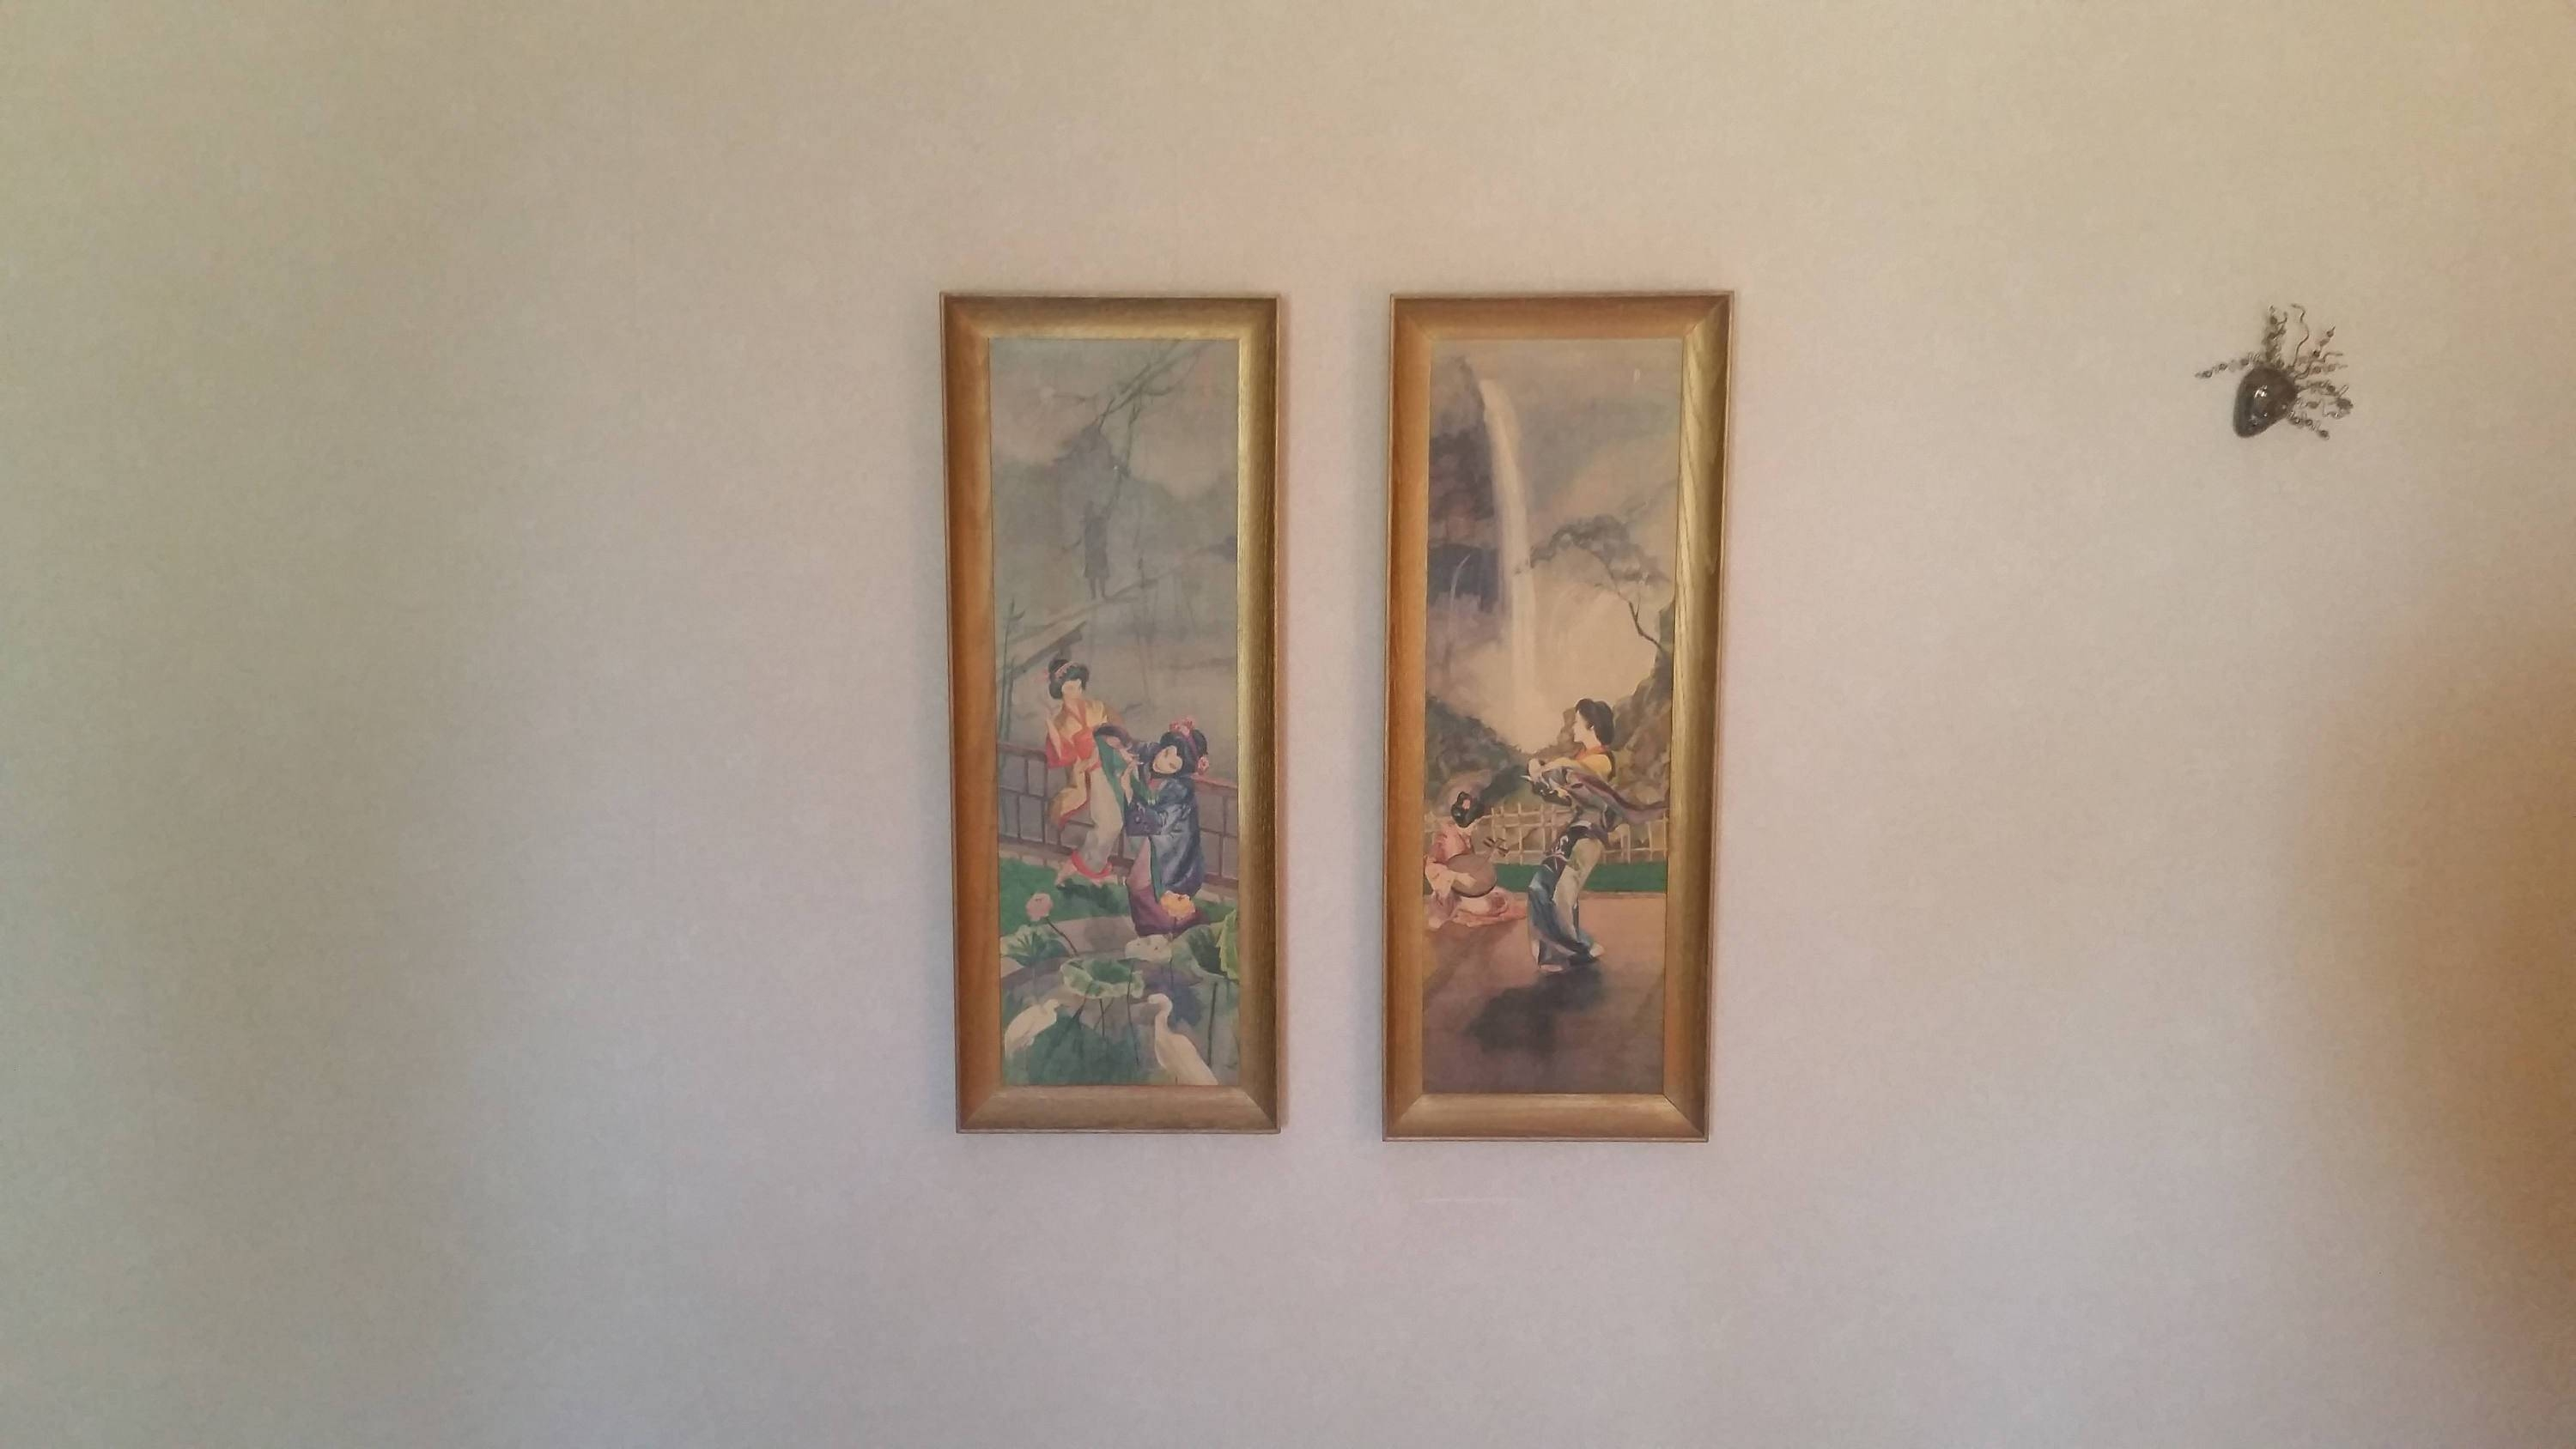 Vintage 1960's Japanese Framed Panels Mid Century Modern Pertaining To Most Recent Japanese Wall Art Panels (Gallery 17 of 25)